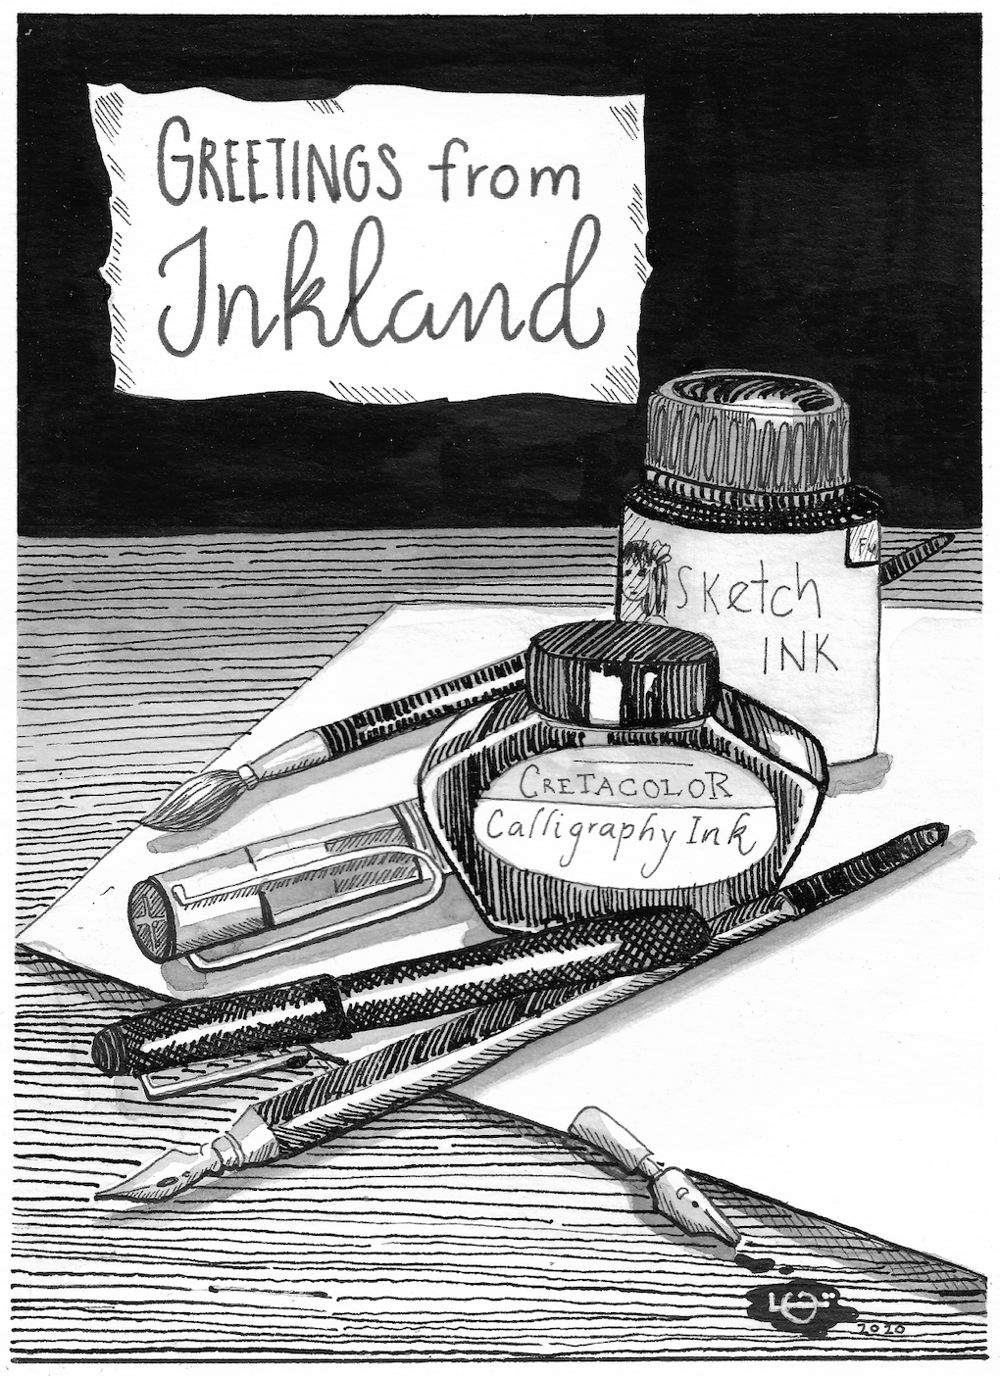 Greeting from Inkland - image 1 - student project